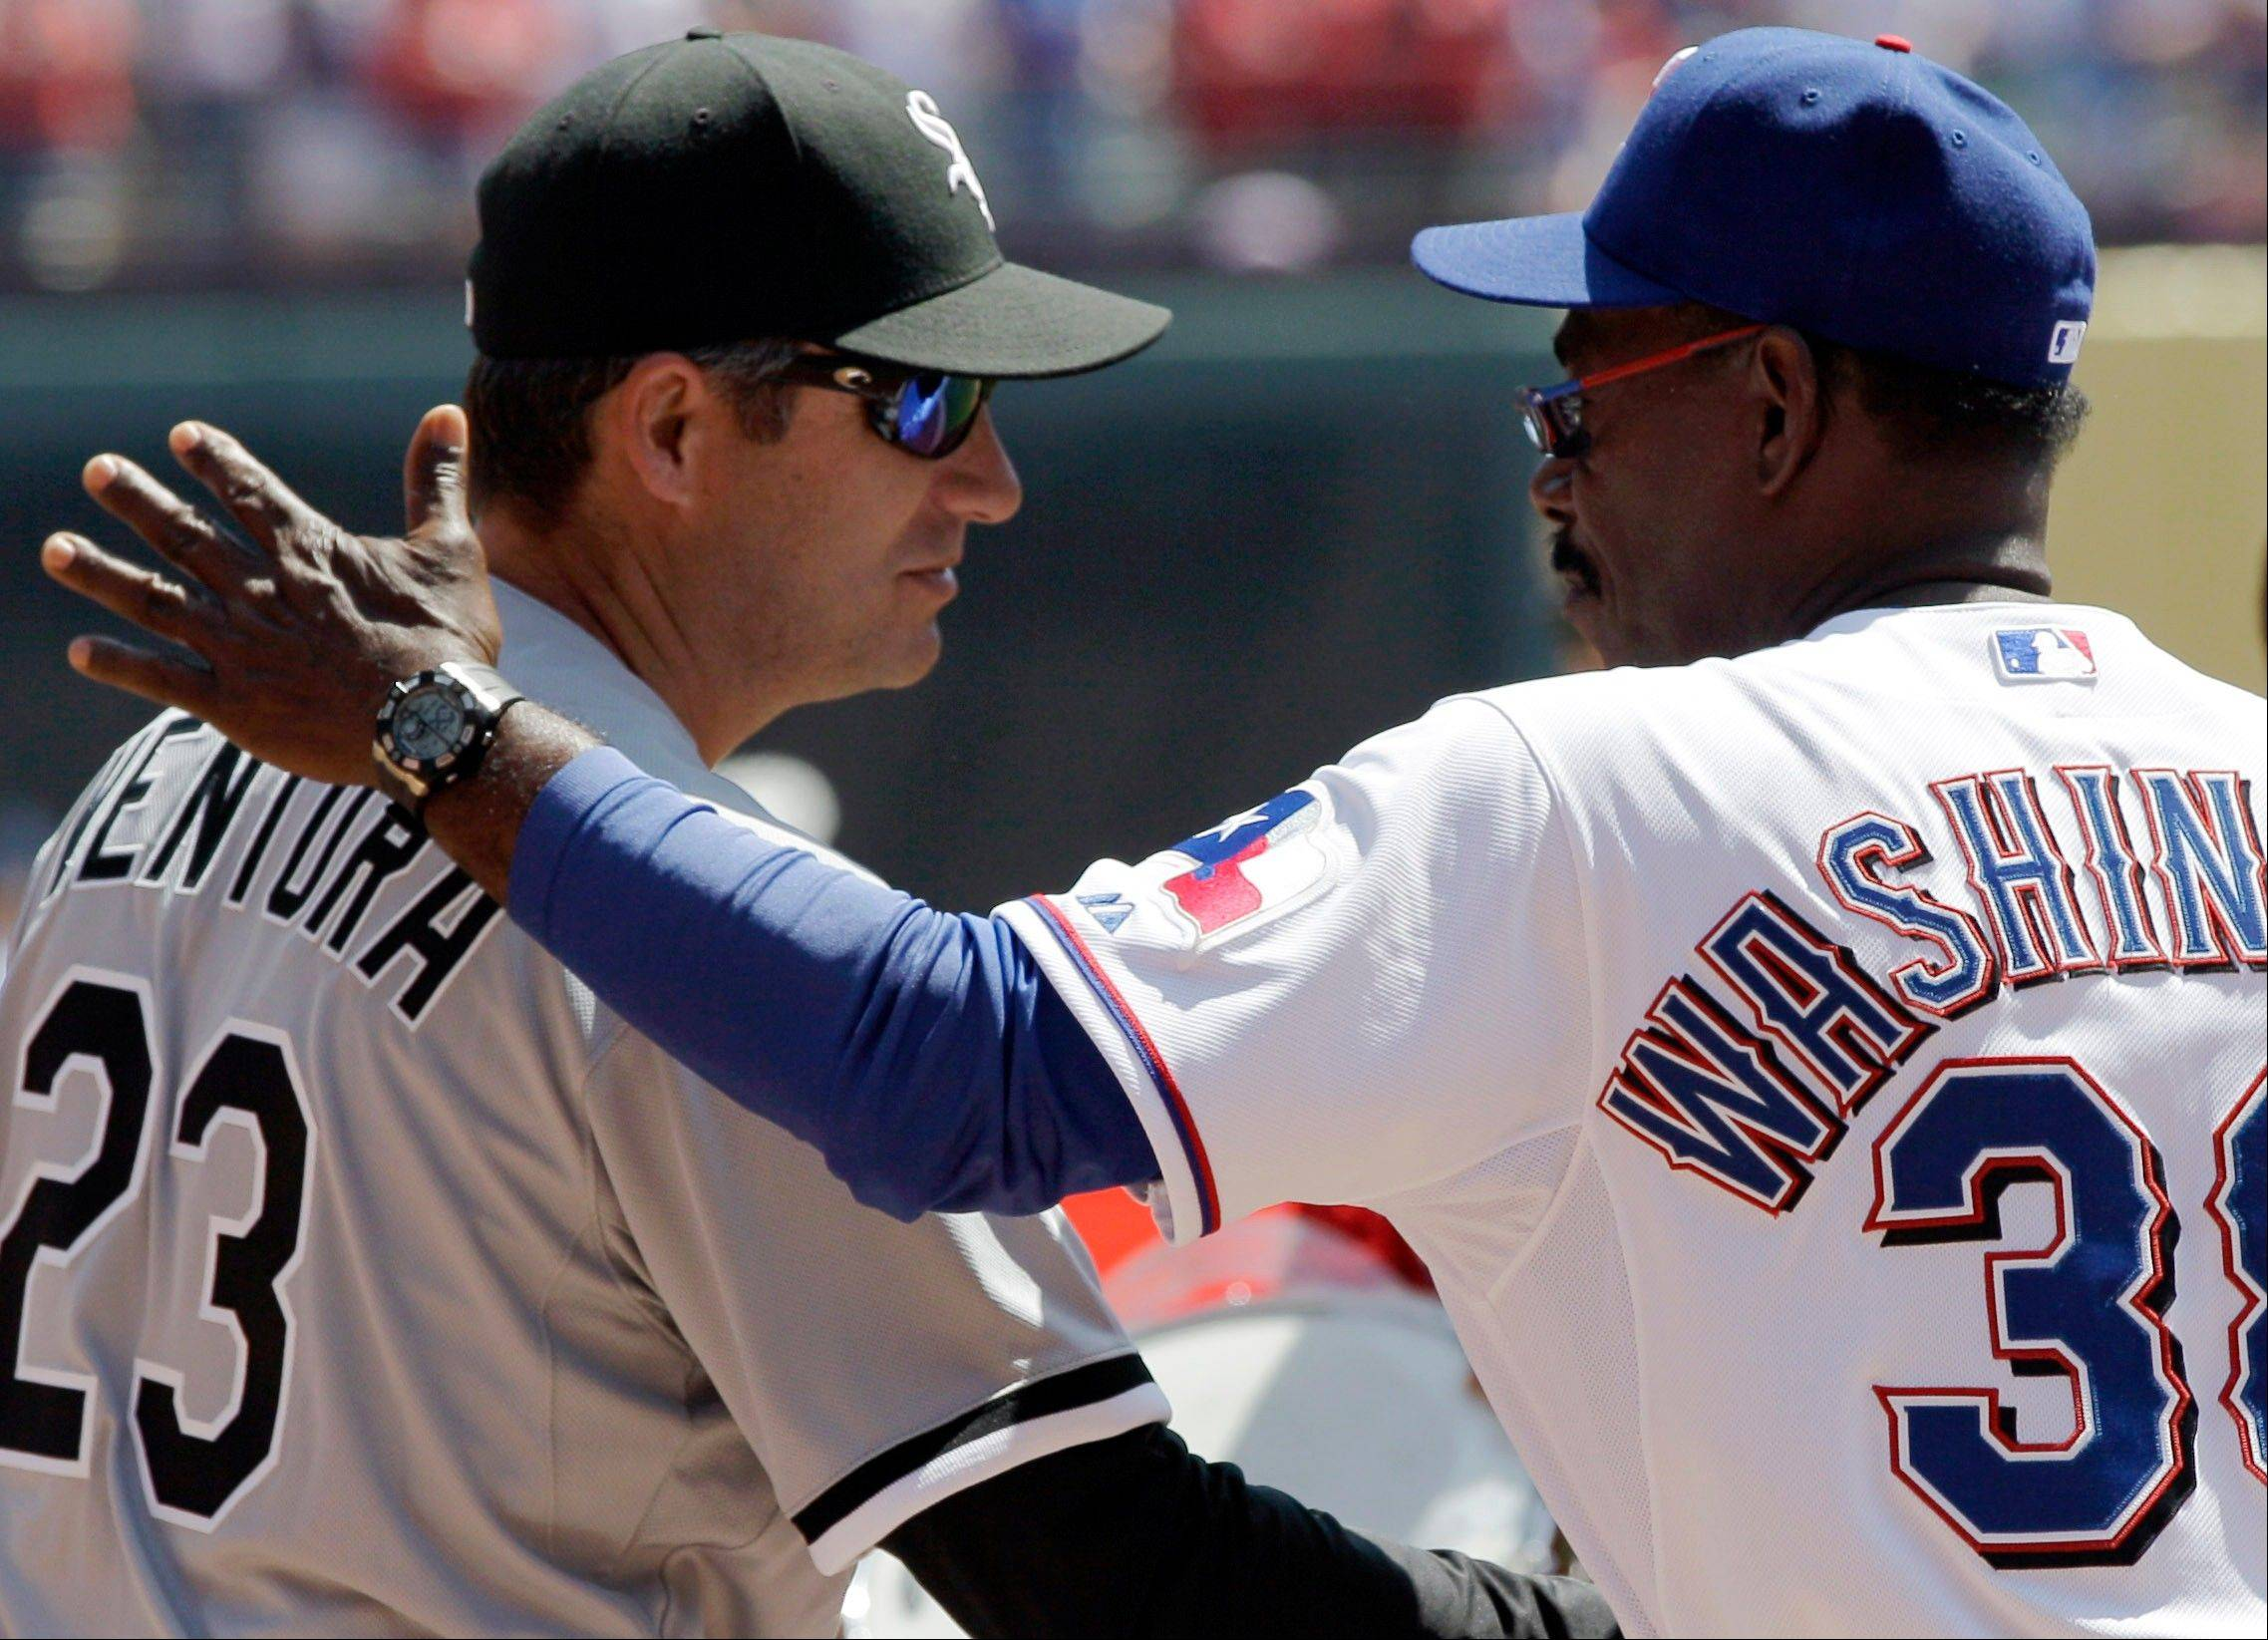 White Sox manager Robin Ventura greets Texas Rangers manager Ron Washington before Friday's game.